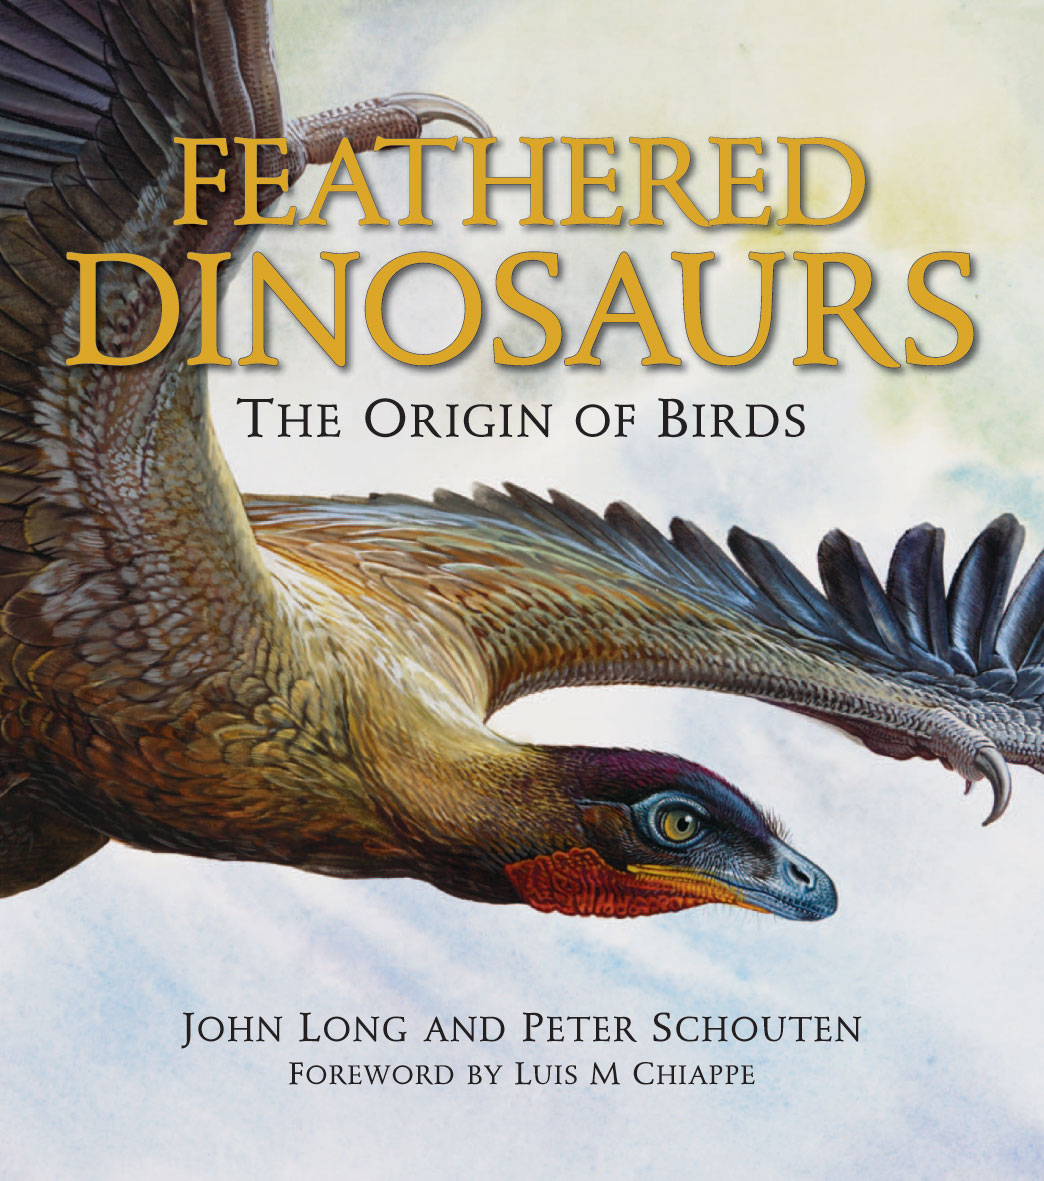 The cover image of Feathered Dinosaurs, featuring a picture of a feathered